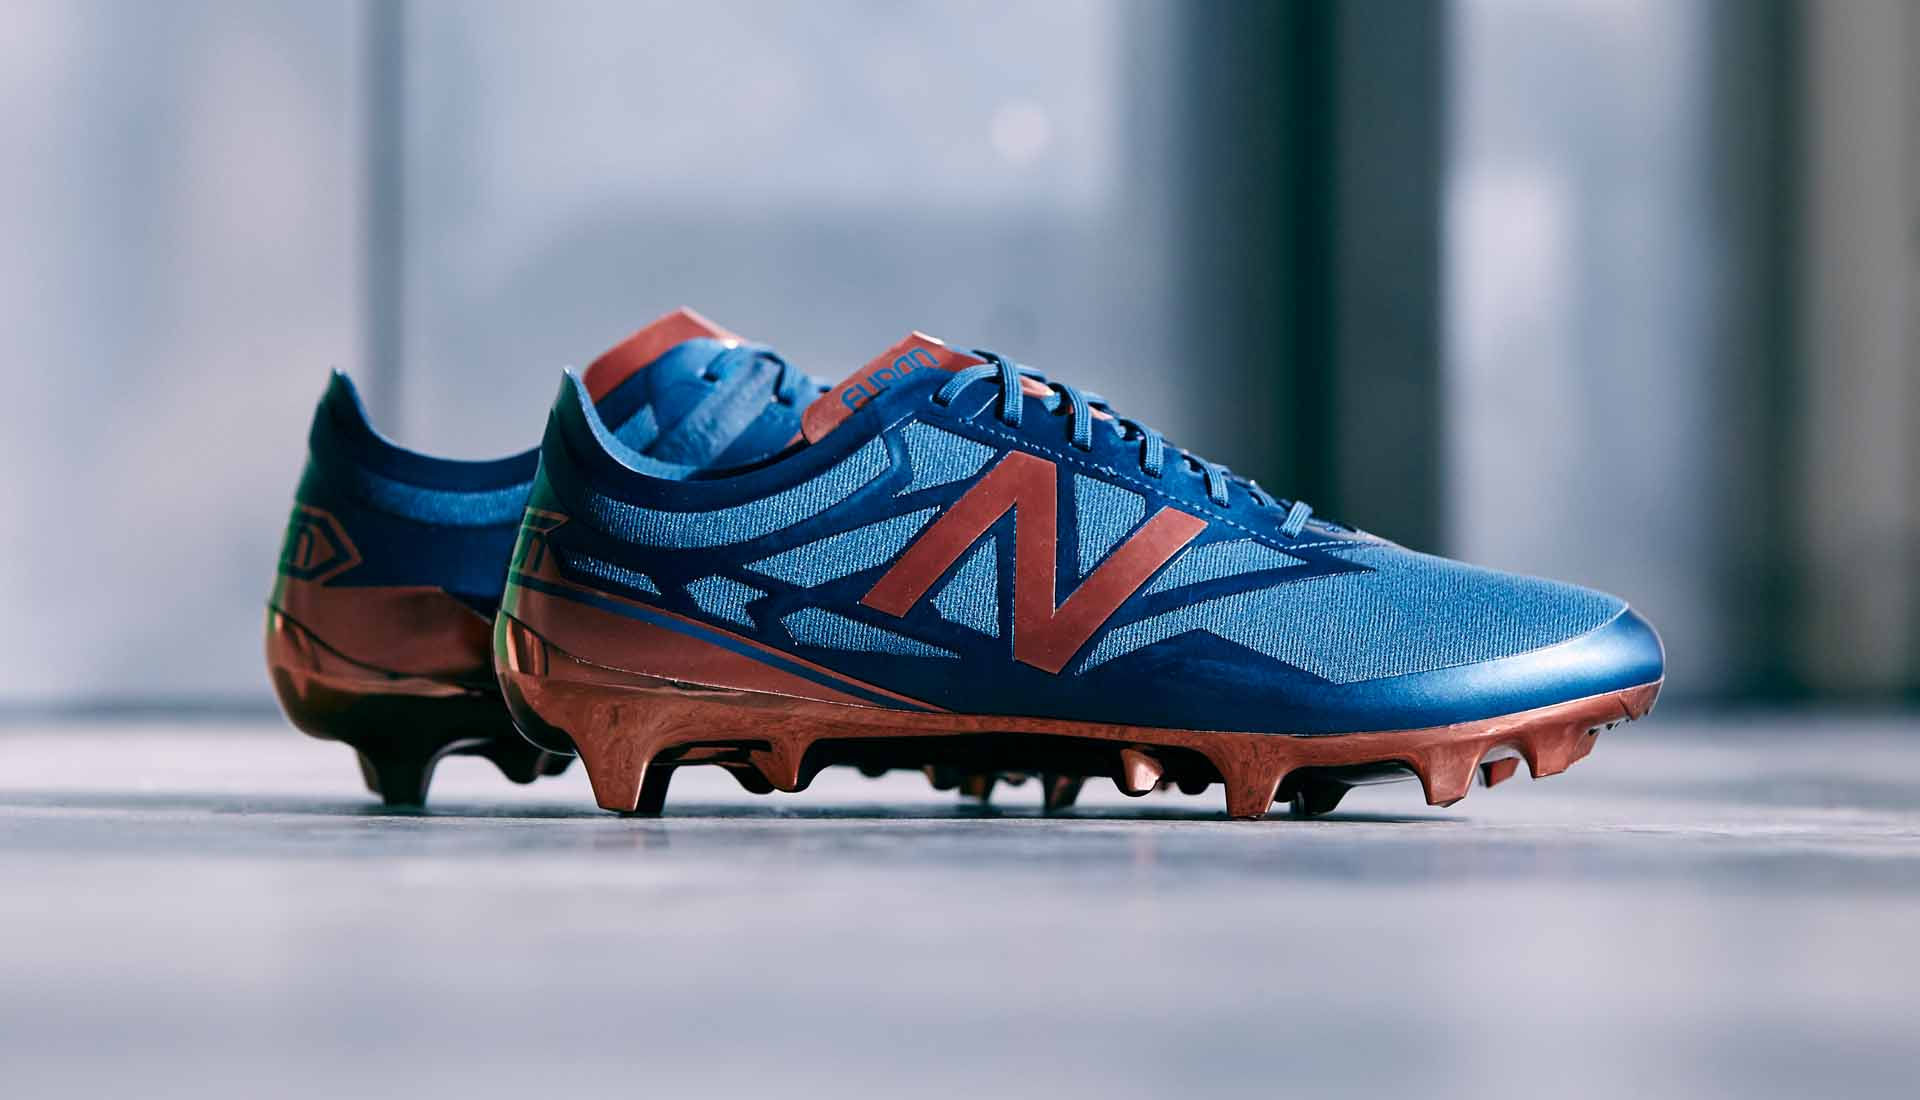 New Balance Furon 3.0 Pro FG Conduction Pack - Bleu/Cuivre